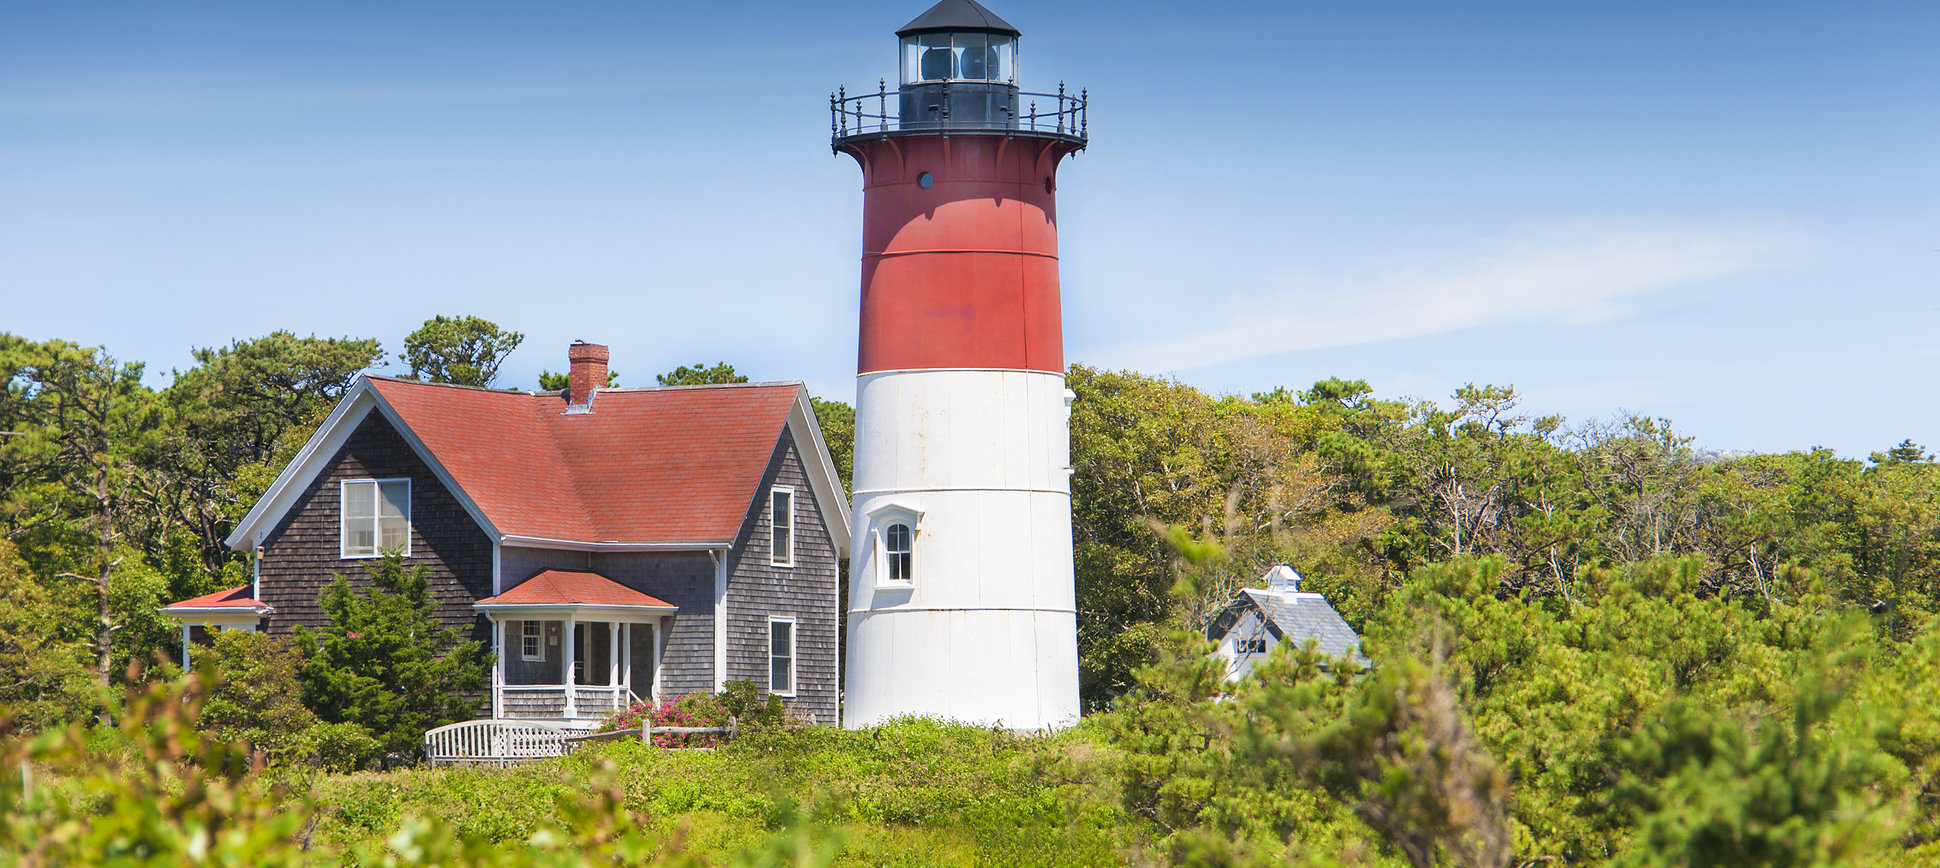 8 Underrated Massachusetts Towns You Need to Spend a Lot More Time In